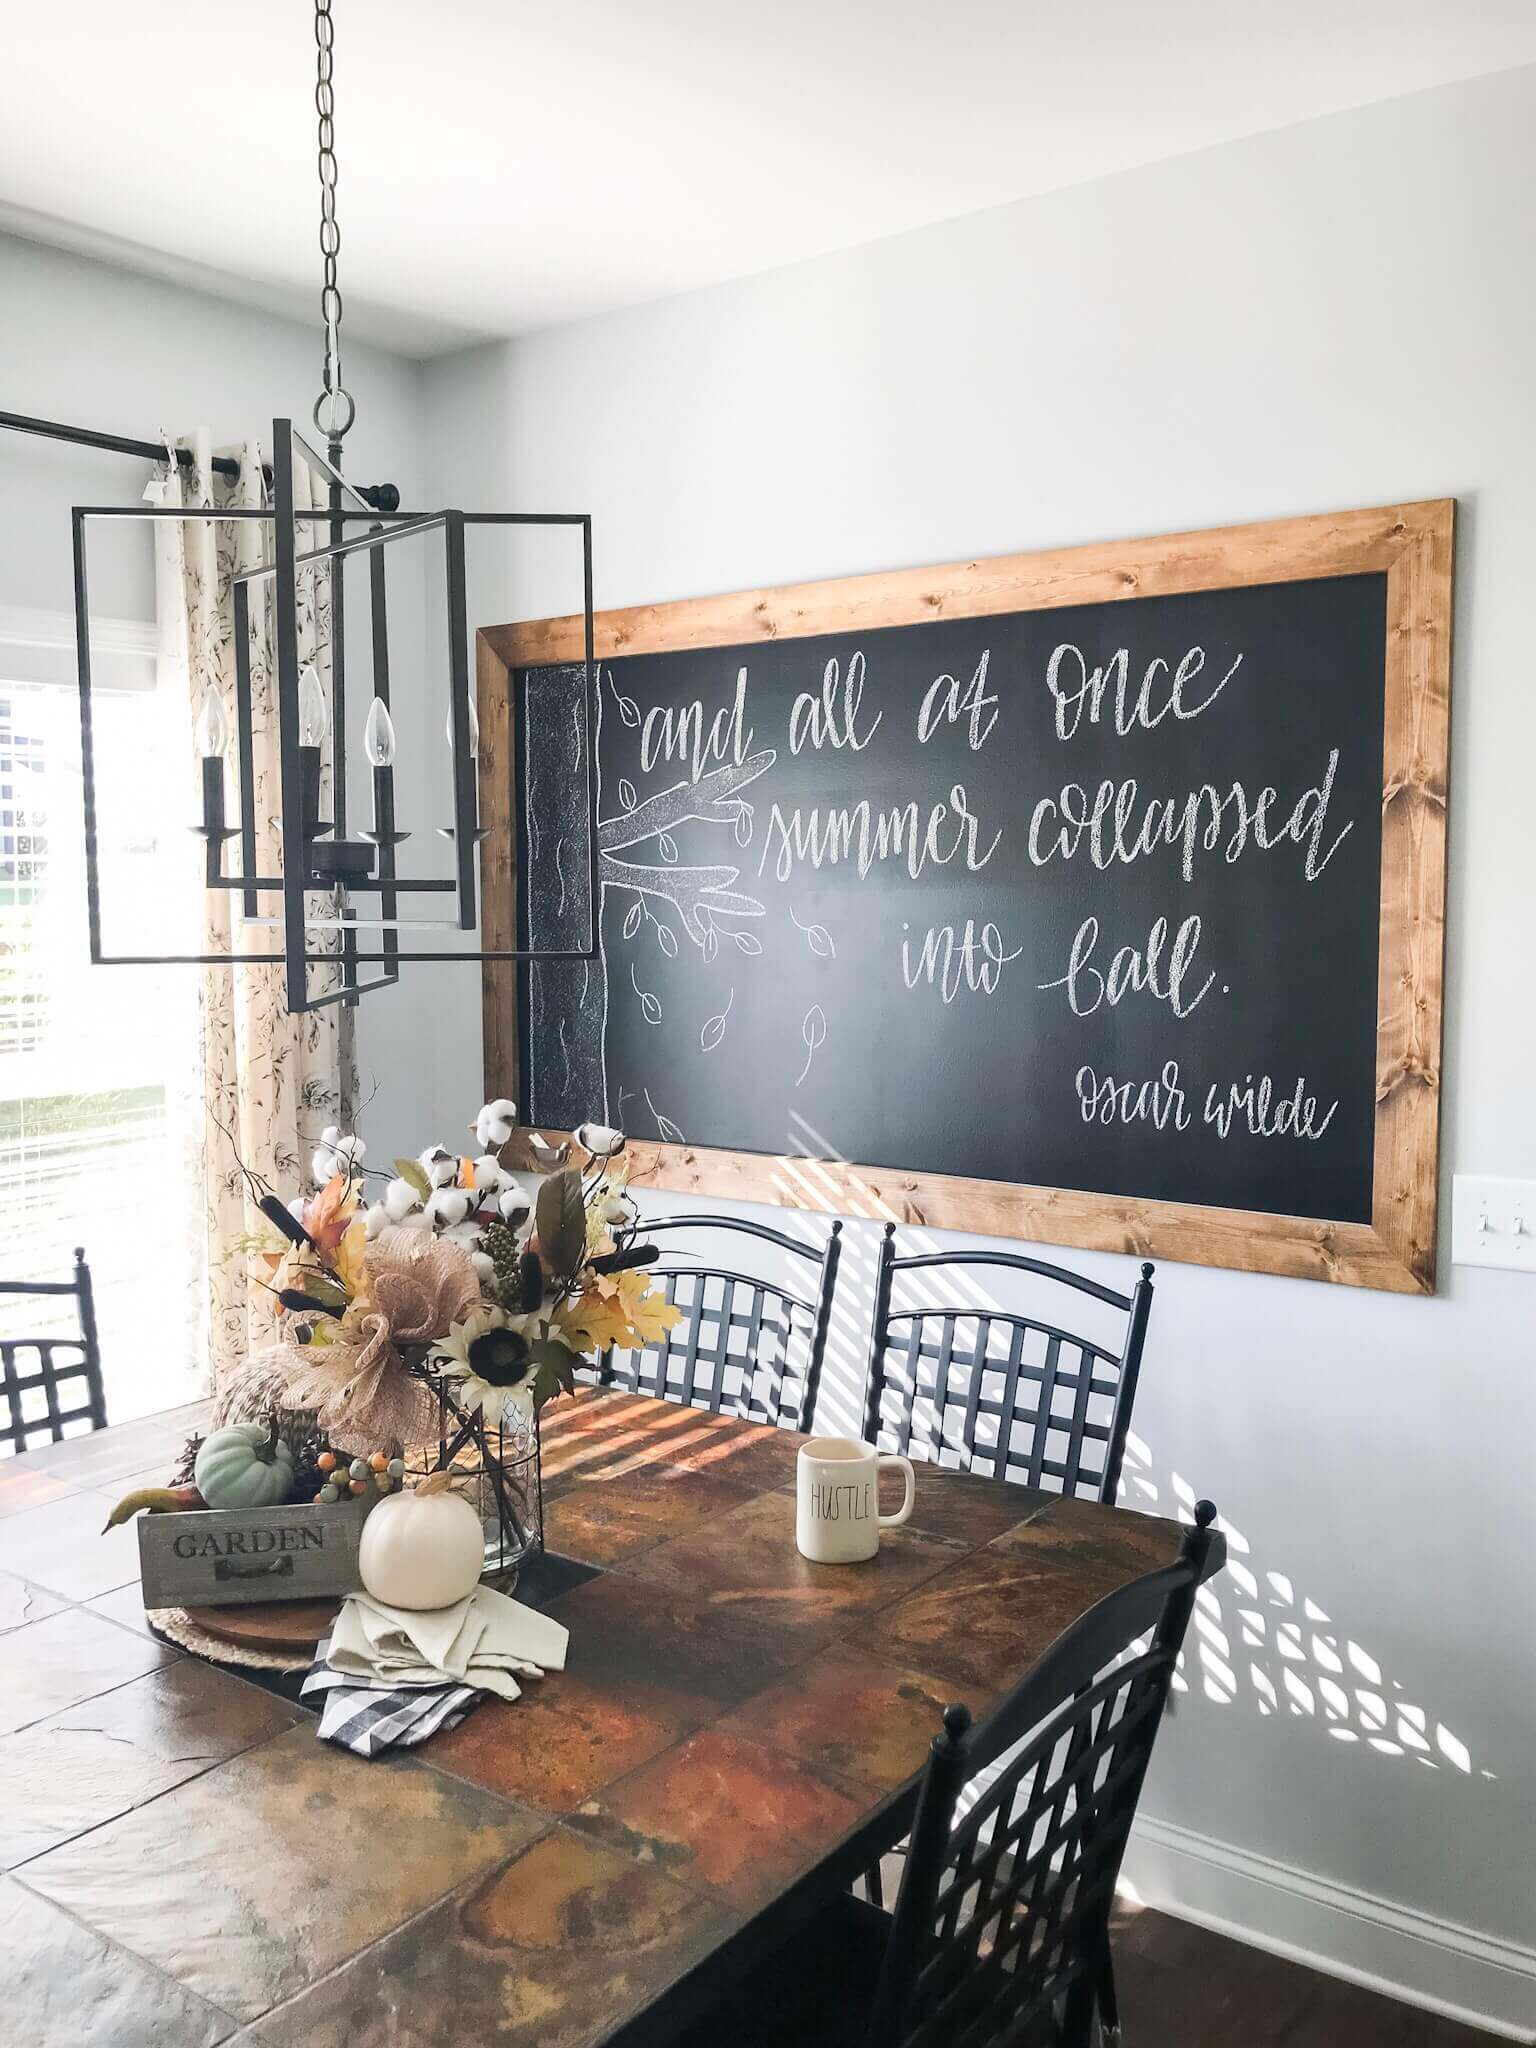 DIY Framed Chalkboard Wall Tutorial | A Hosting Home